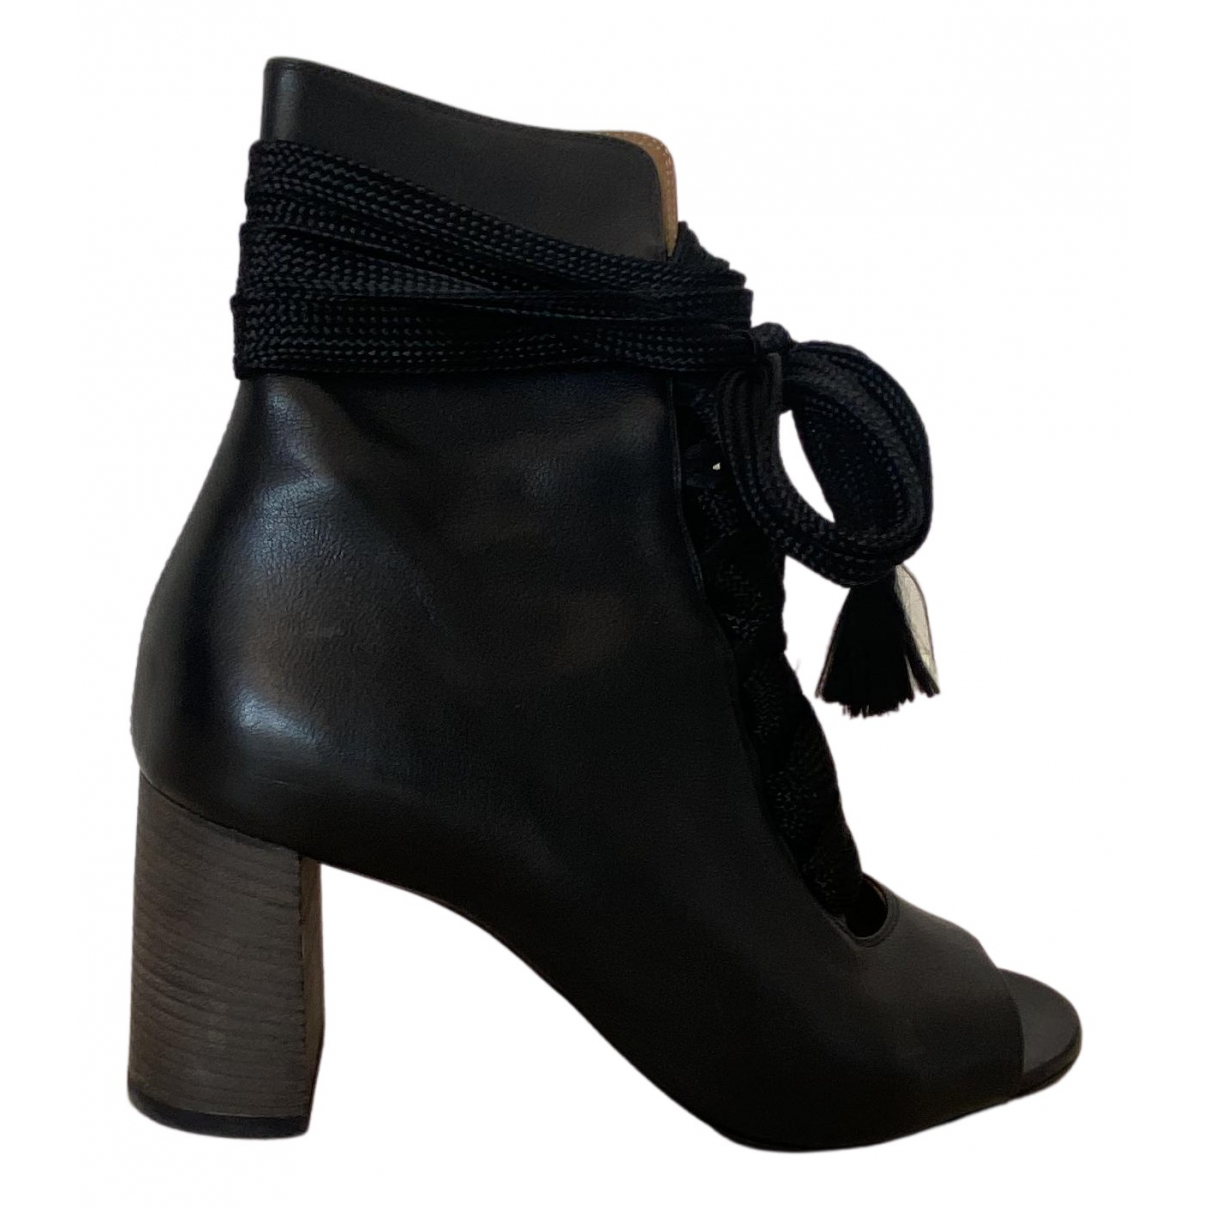 Chloé N Black Leather Ankle boots for Women 40 EU